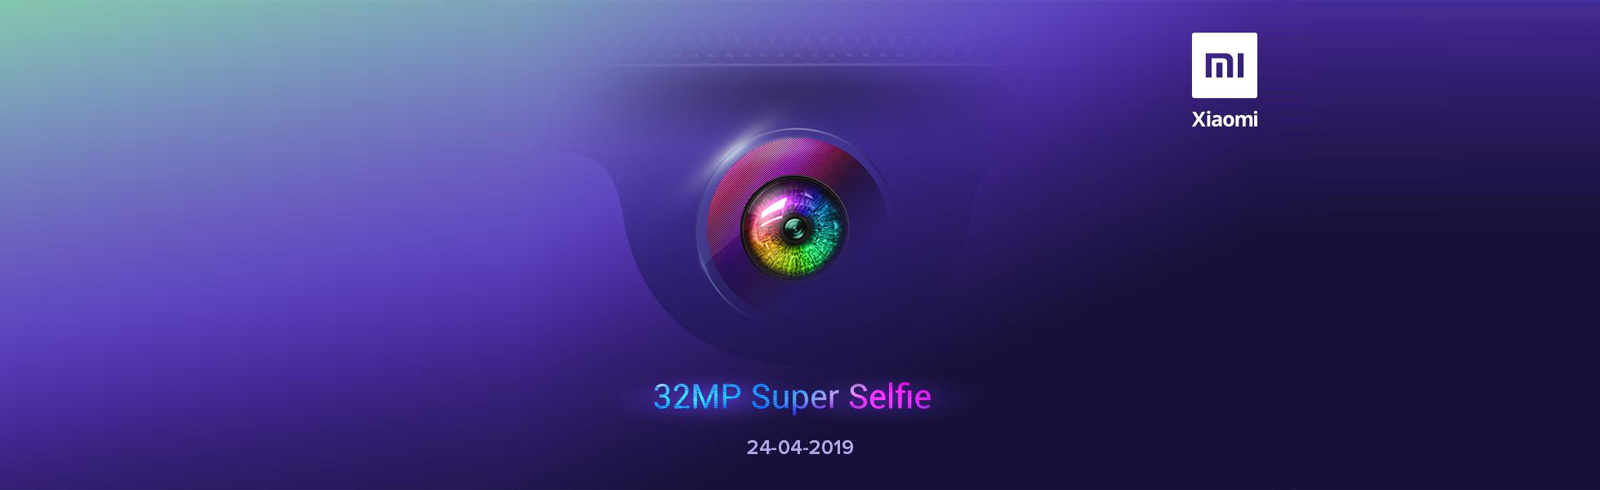 Redmi Y3 will be launched in India on April 24